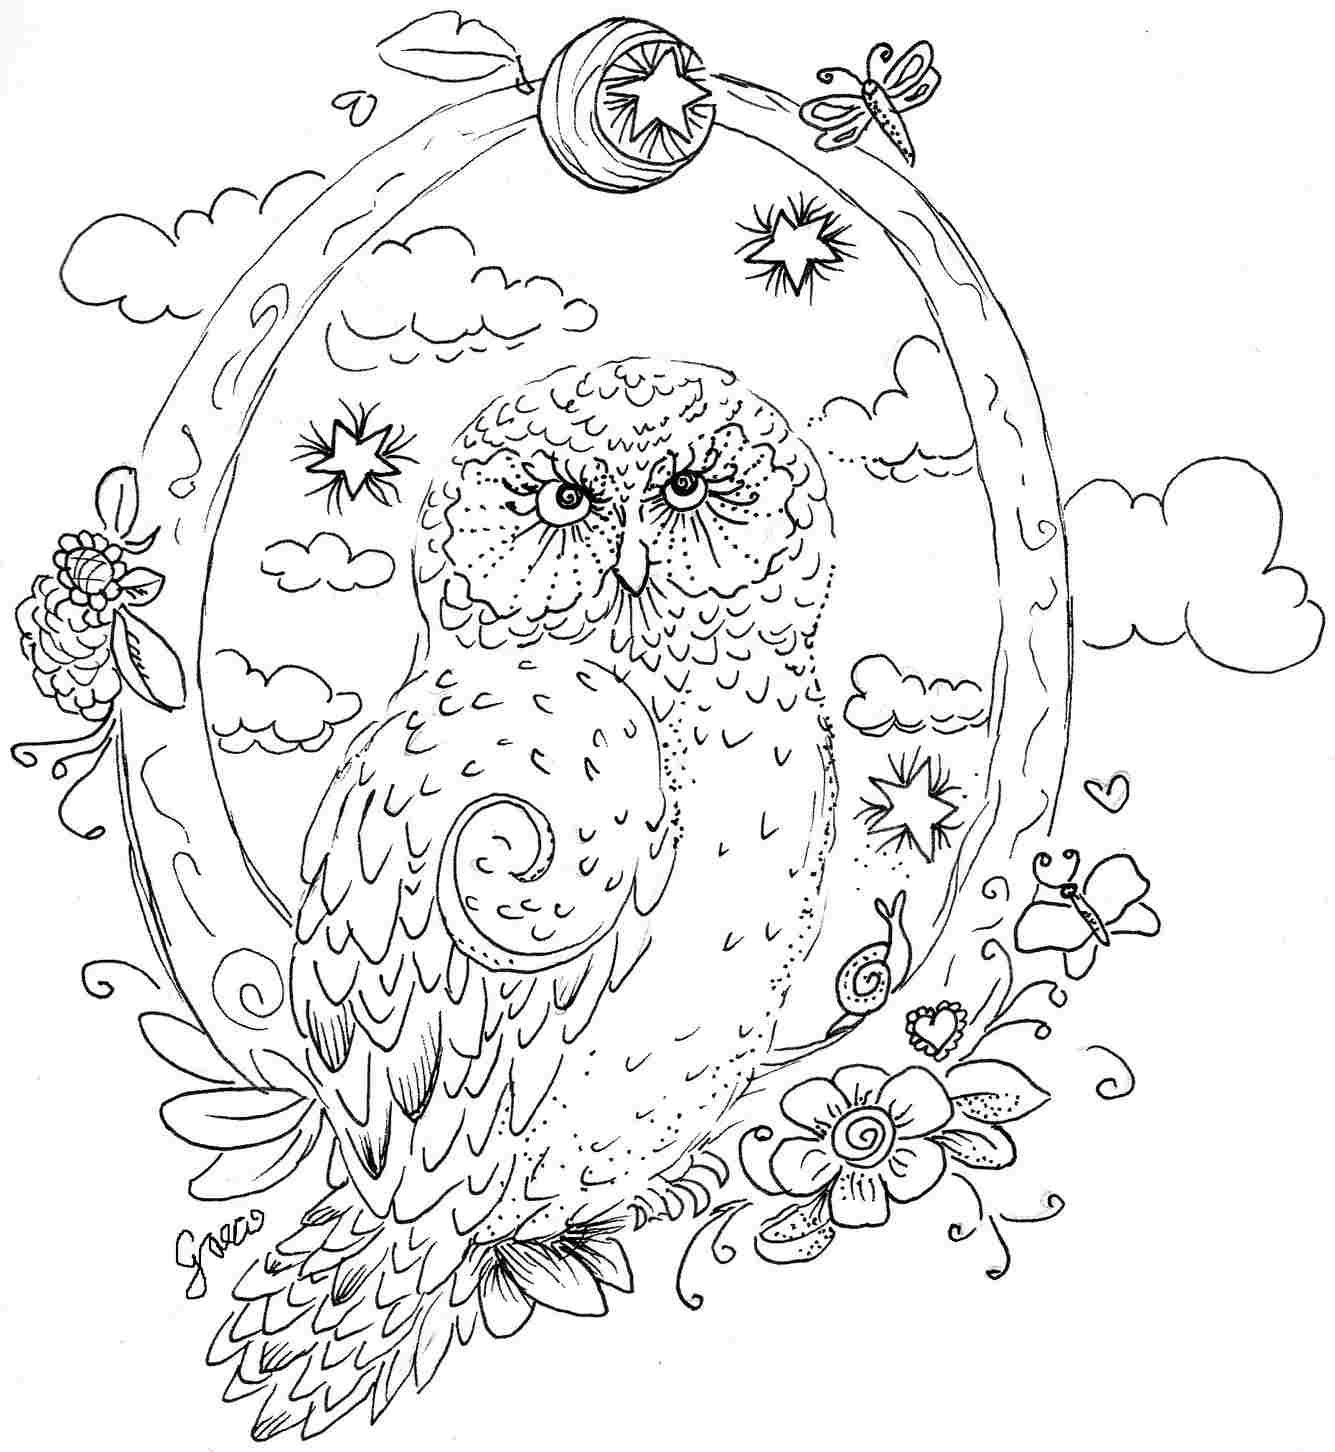 Owl coloring pages free - Pics For Coloring Pages For Adults Difficult Owls